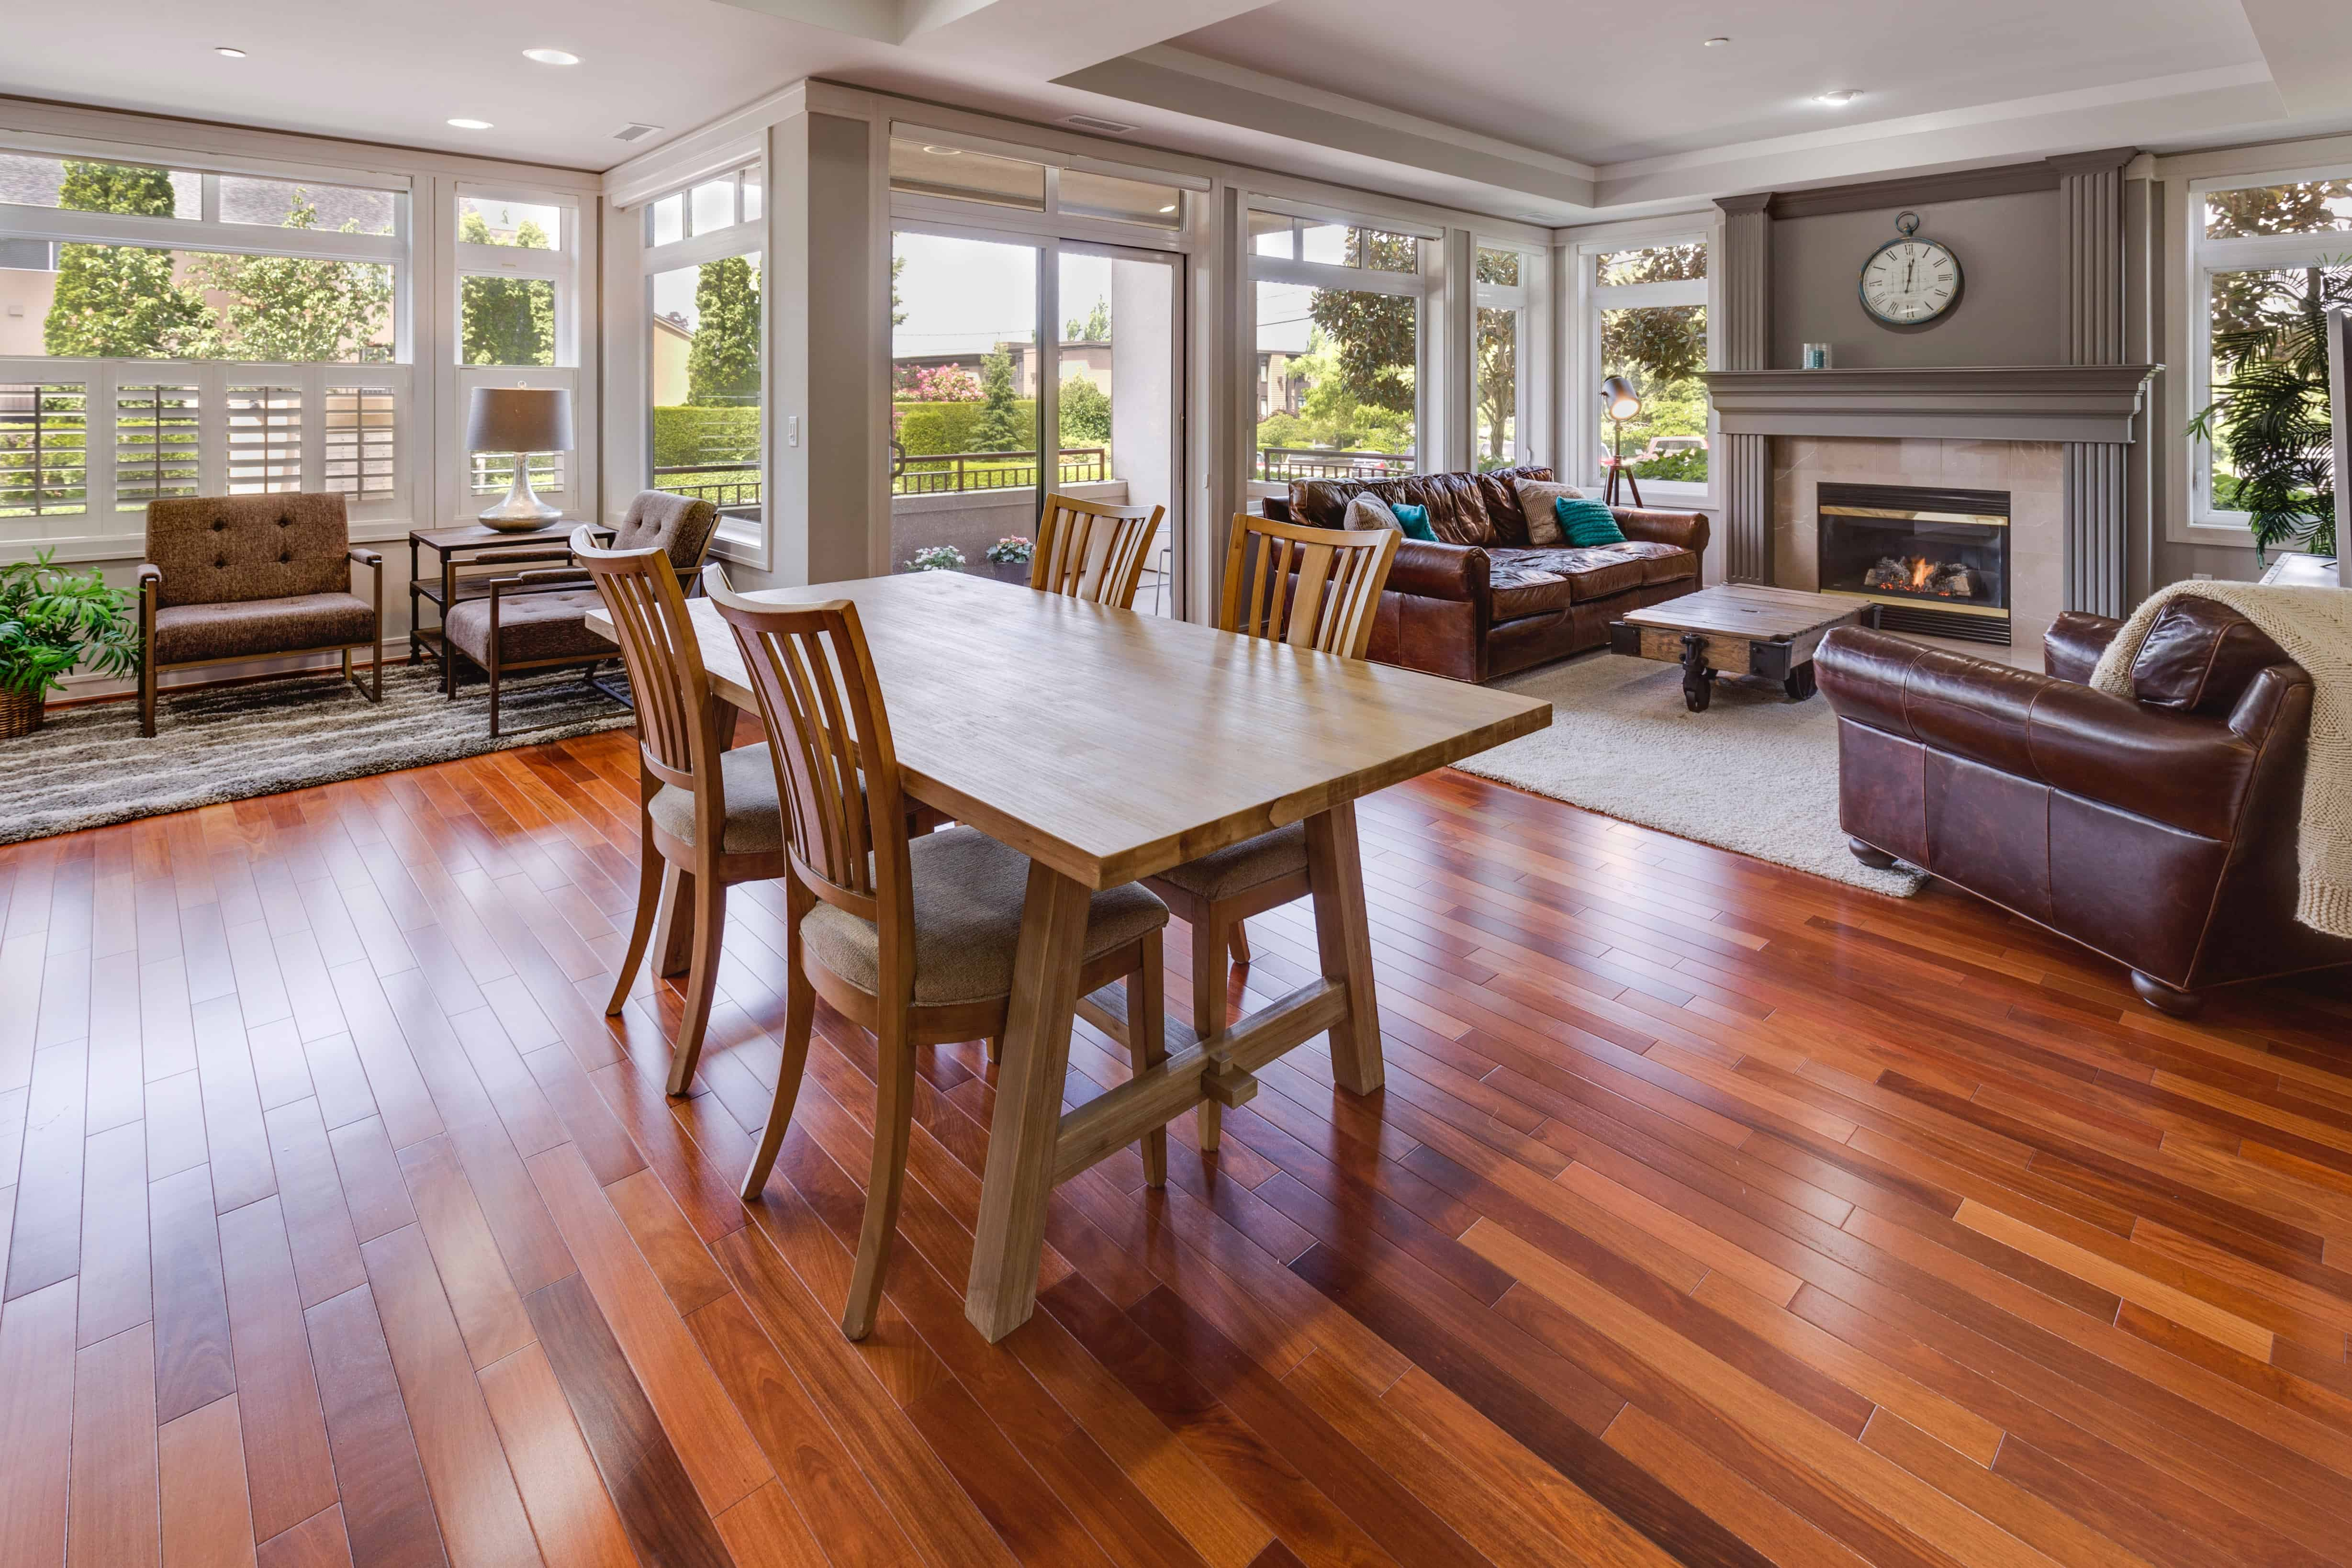 How To Clean And Buff Polyurethane Hardwood Floors Yourself